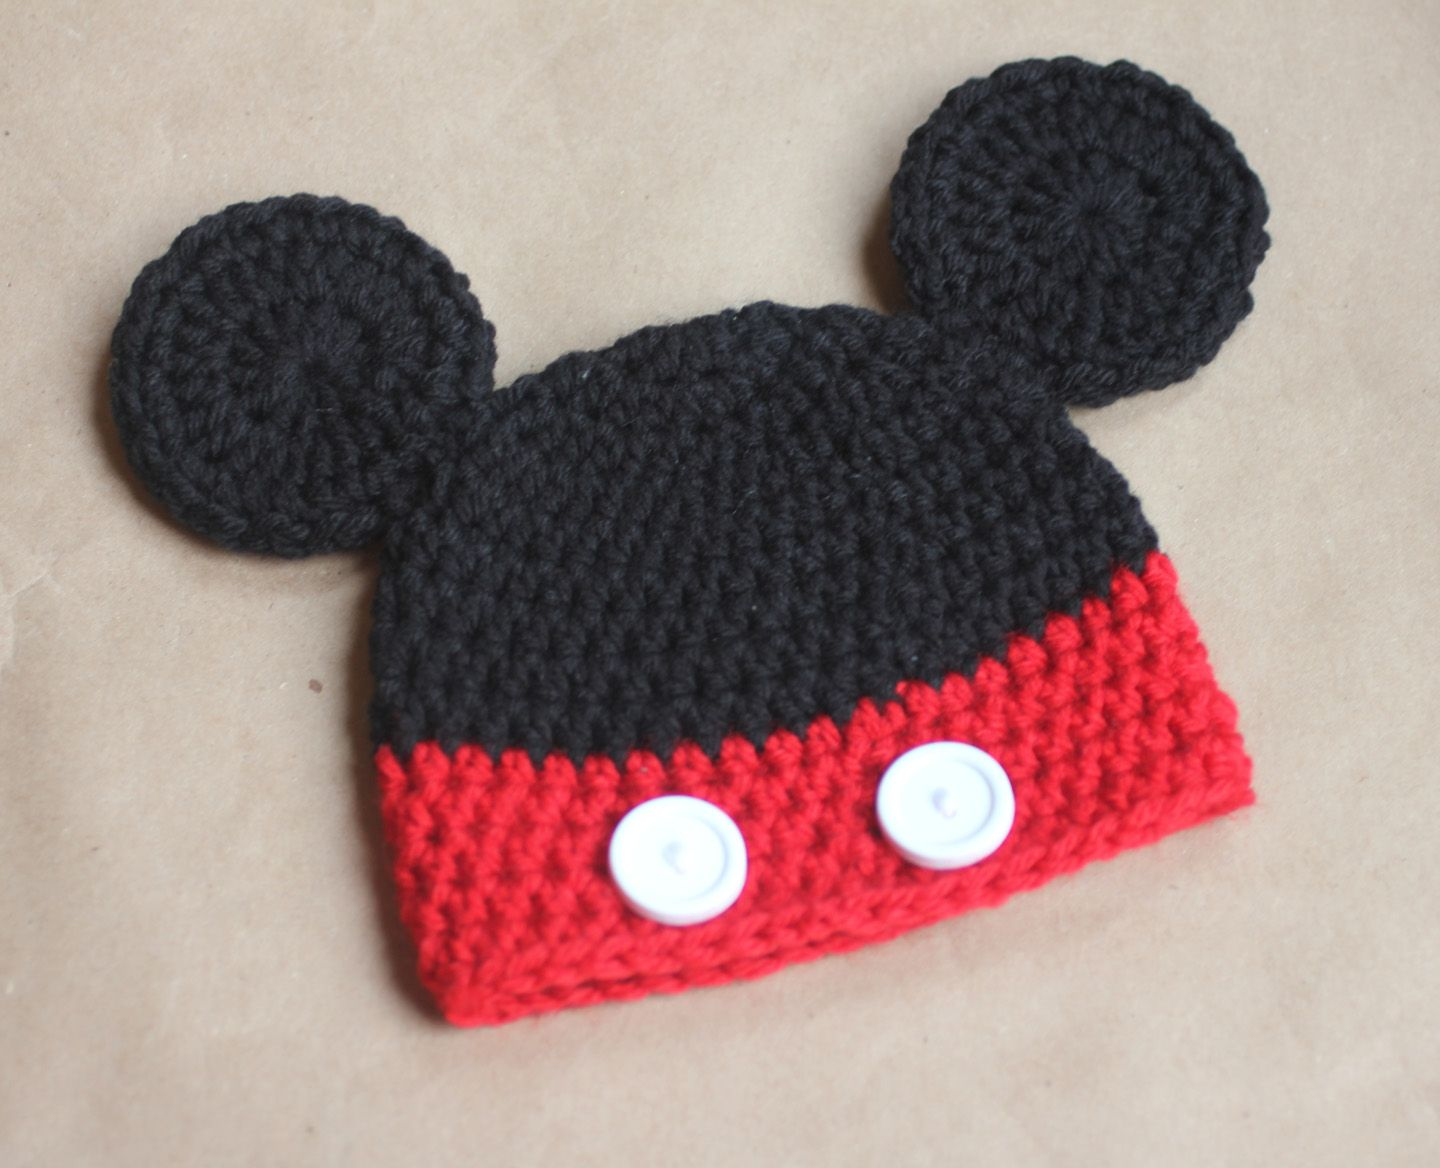 Mickey and Minnie Mouse Crochet Hat Pattern | Häkeln baby ...